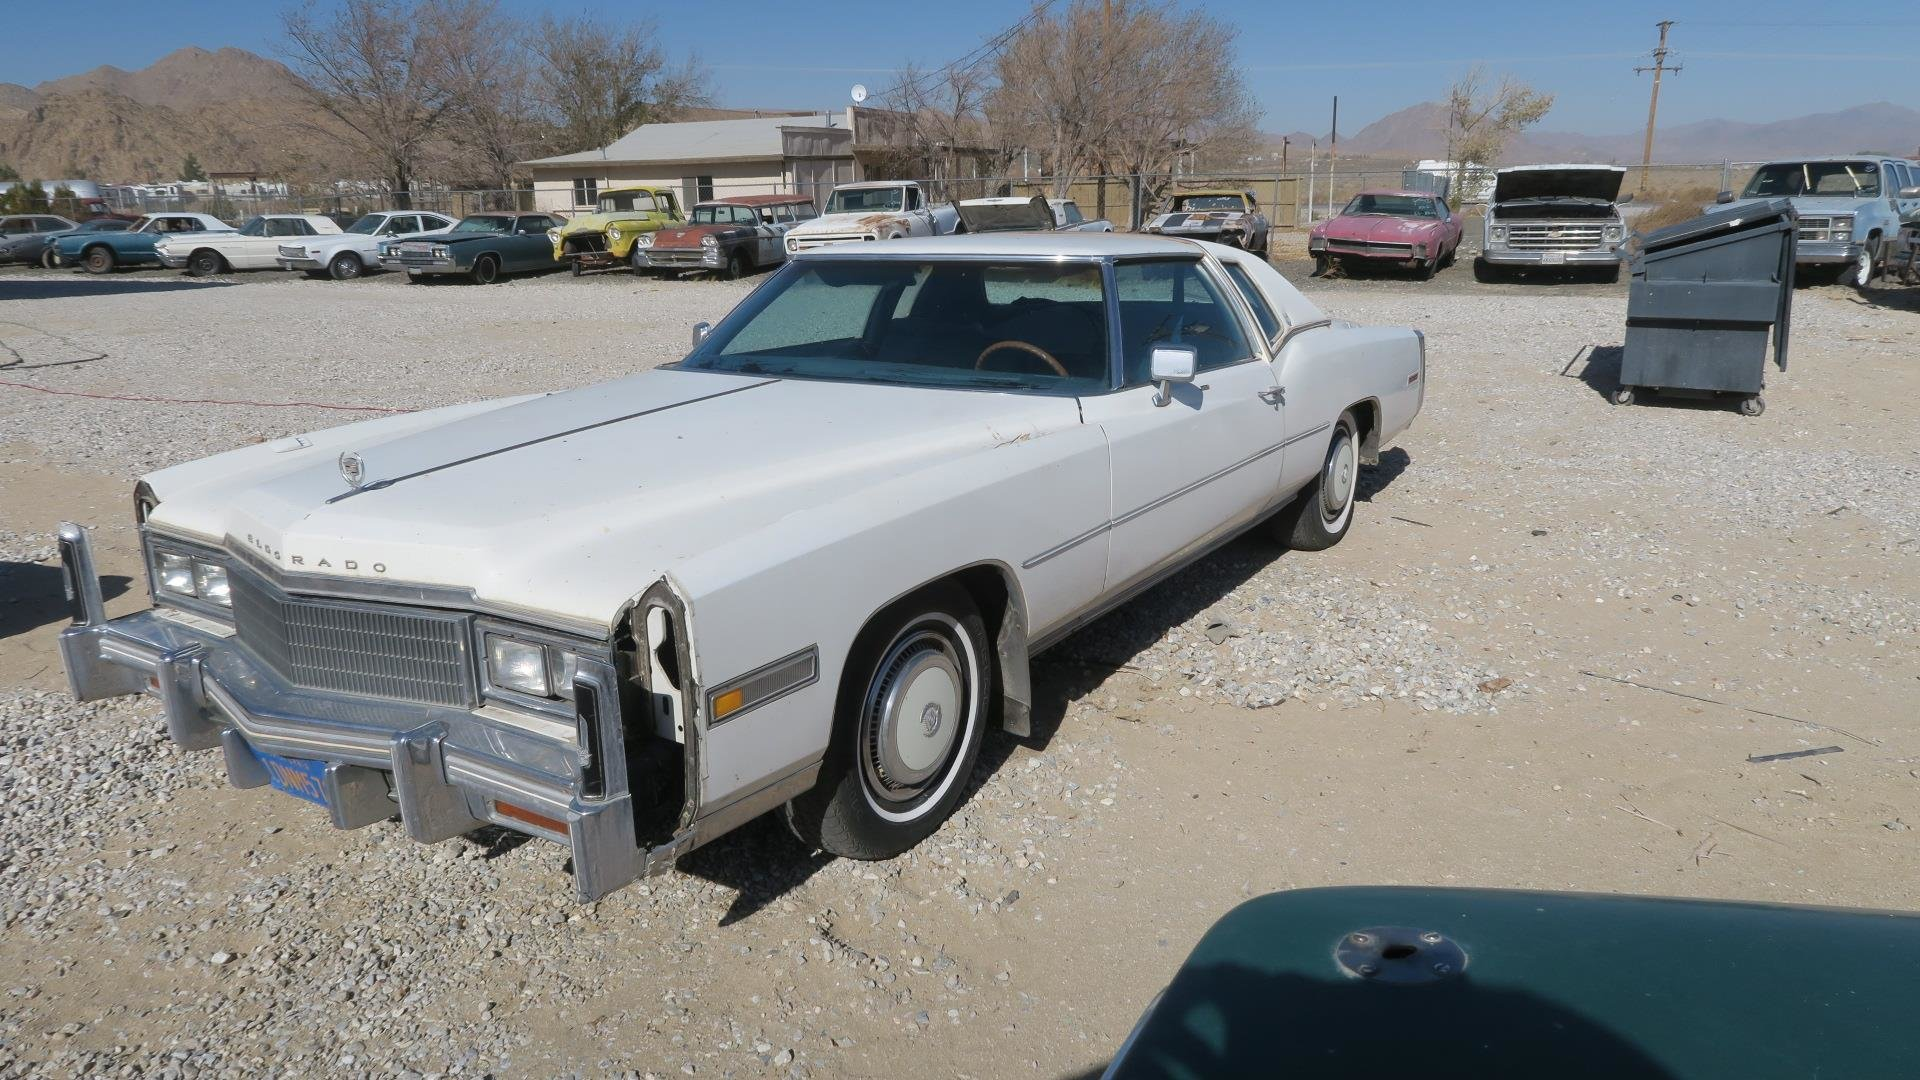 1977 Cadillac Eldorado 2 Door HardTop Project Ivory $1.5k For Sale (picture 2 of 6)